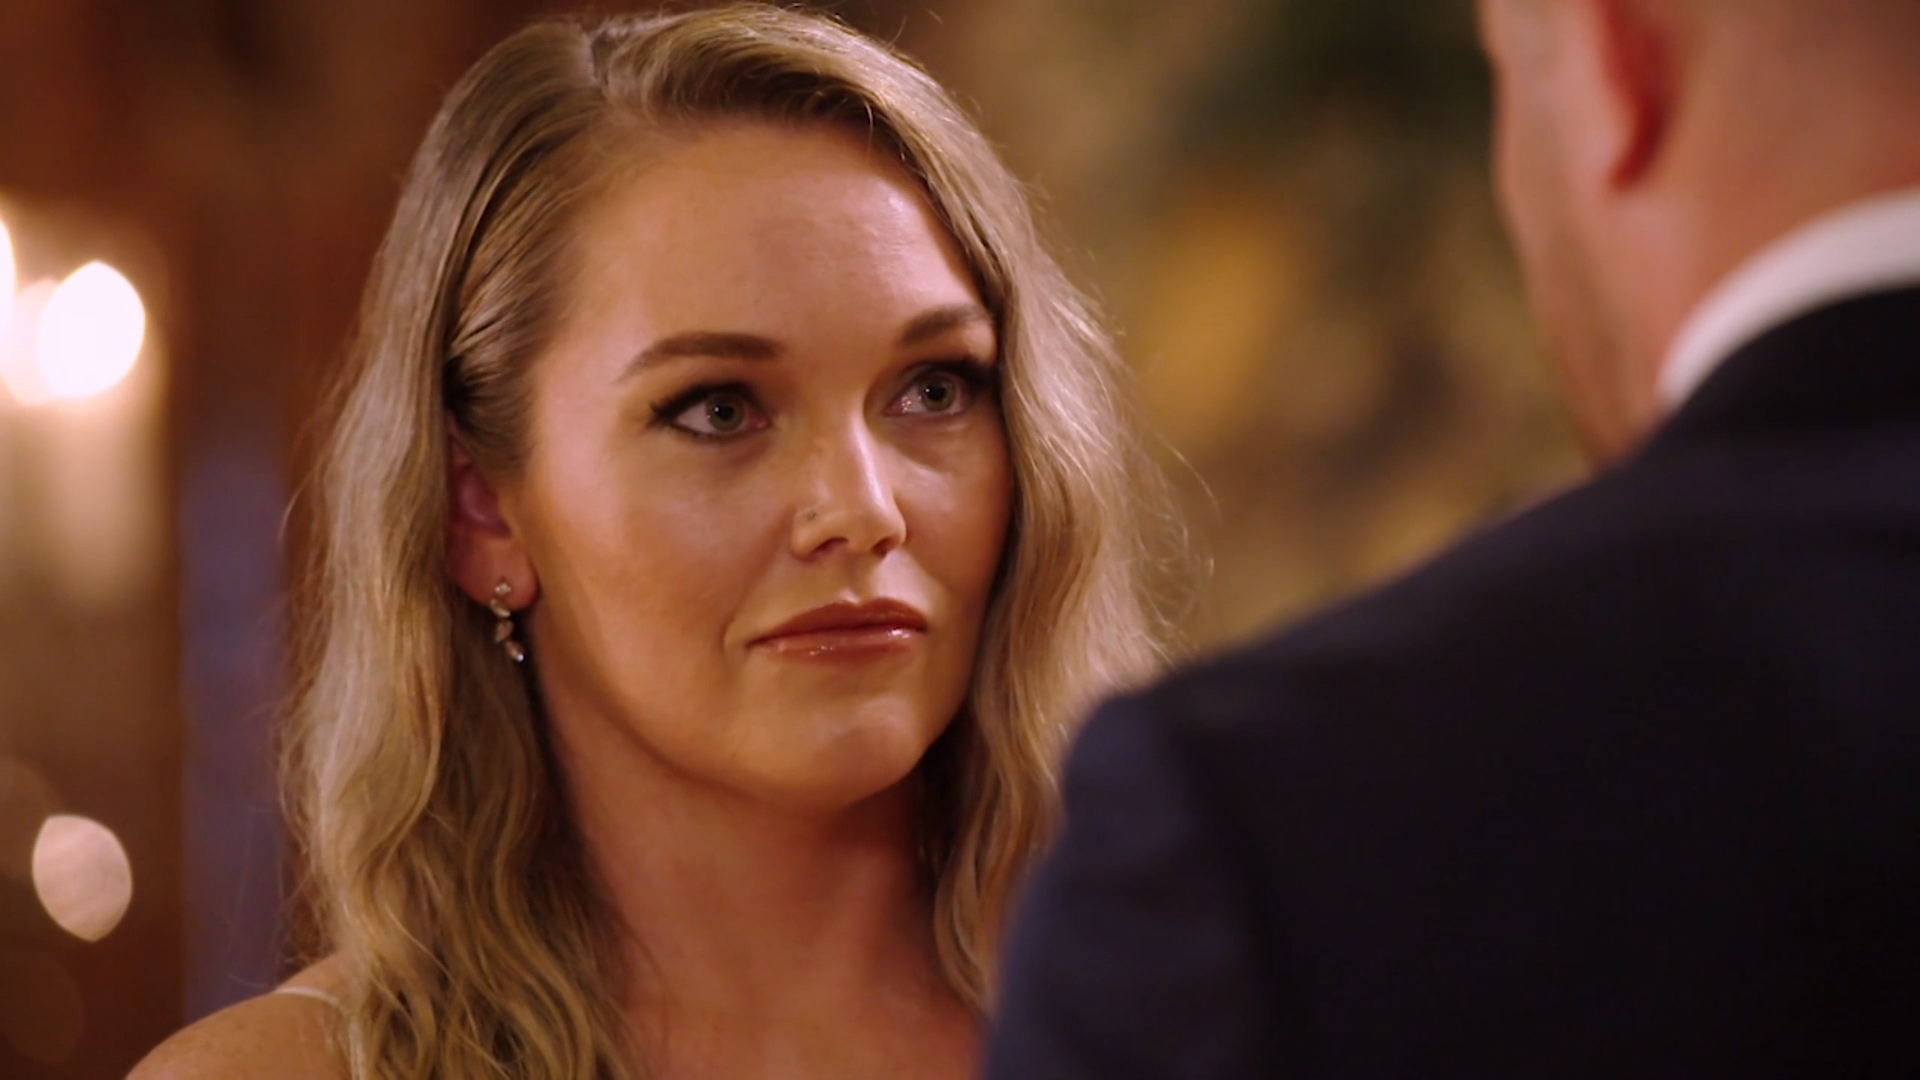 Episode 29 Recap: Incredible Final Vows as couples decide on their future